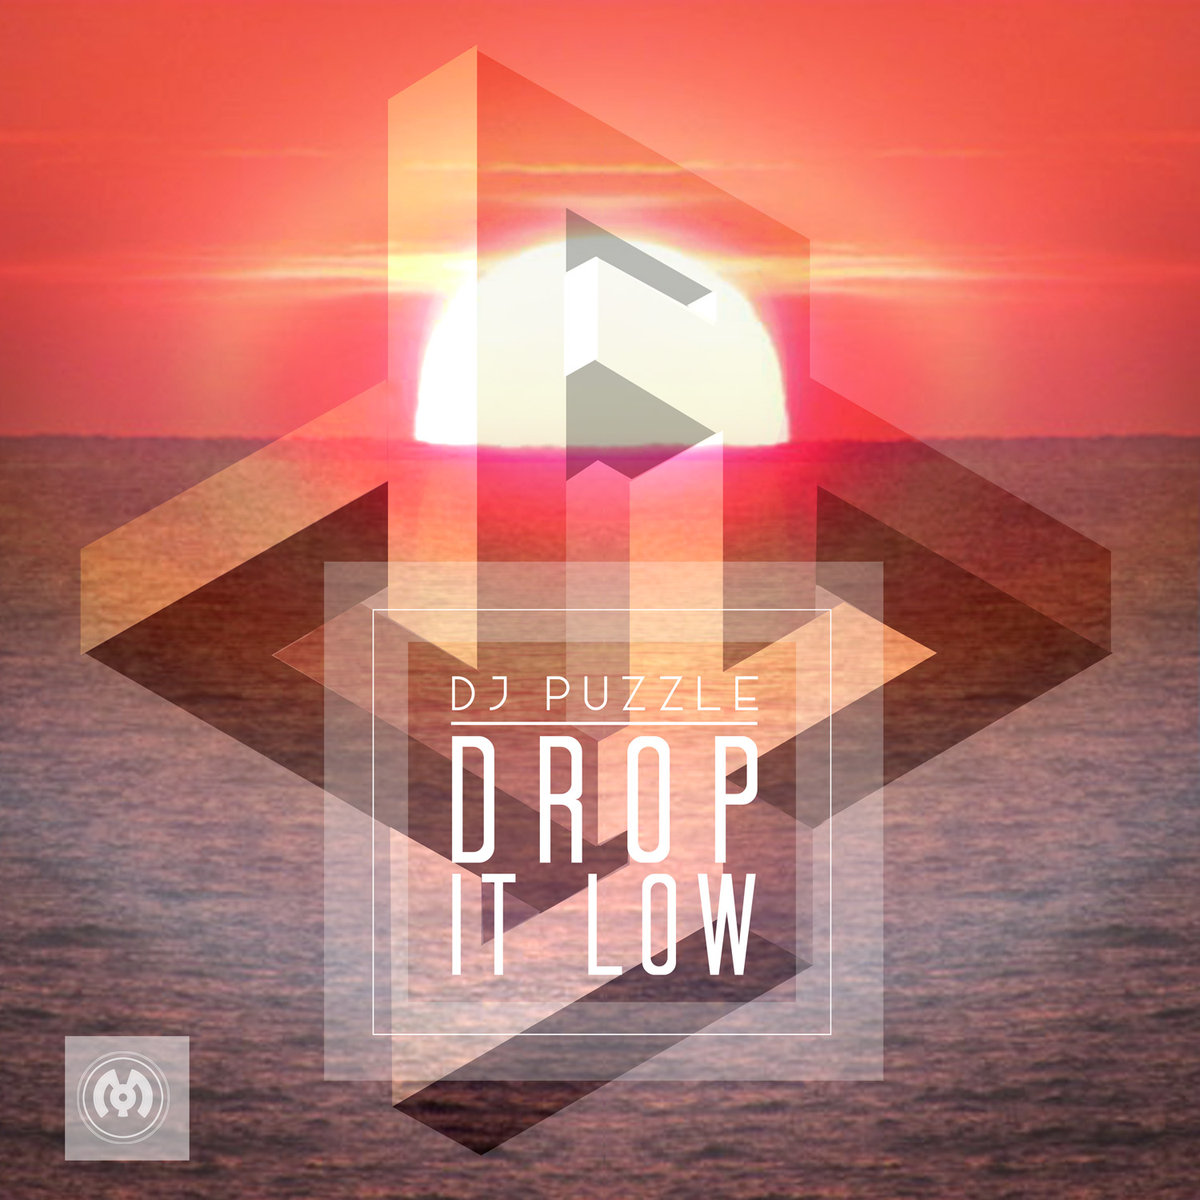 DJ Puzzle - Bass Growl @ 'Drop It Low' album (electronic, dubstep)